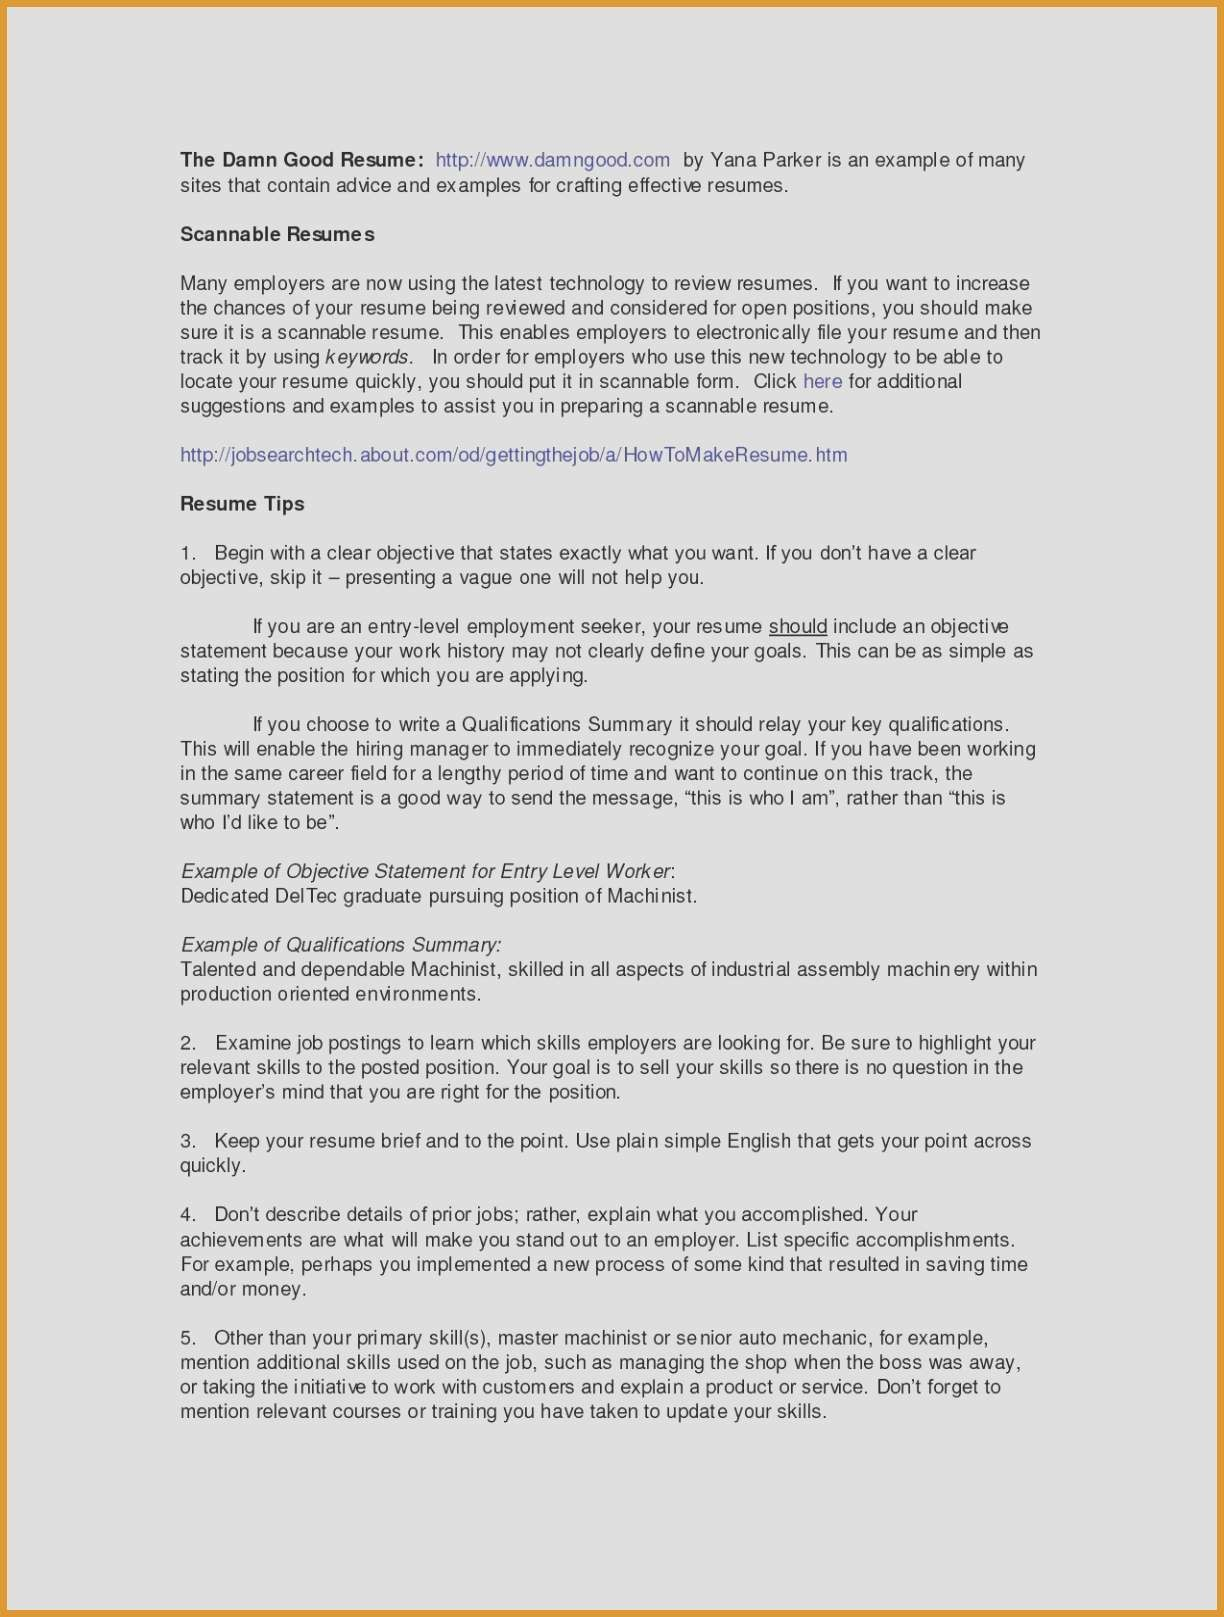 Words to Describe Yourself Resume - How to Sell Yourself A Resume New Best Words for Resume